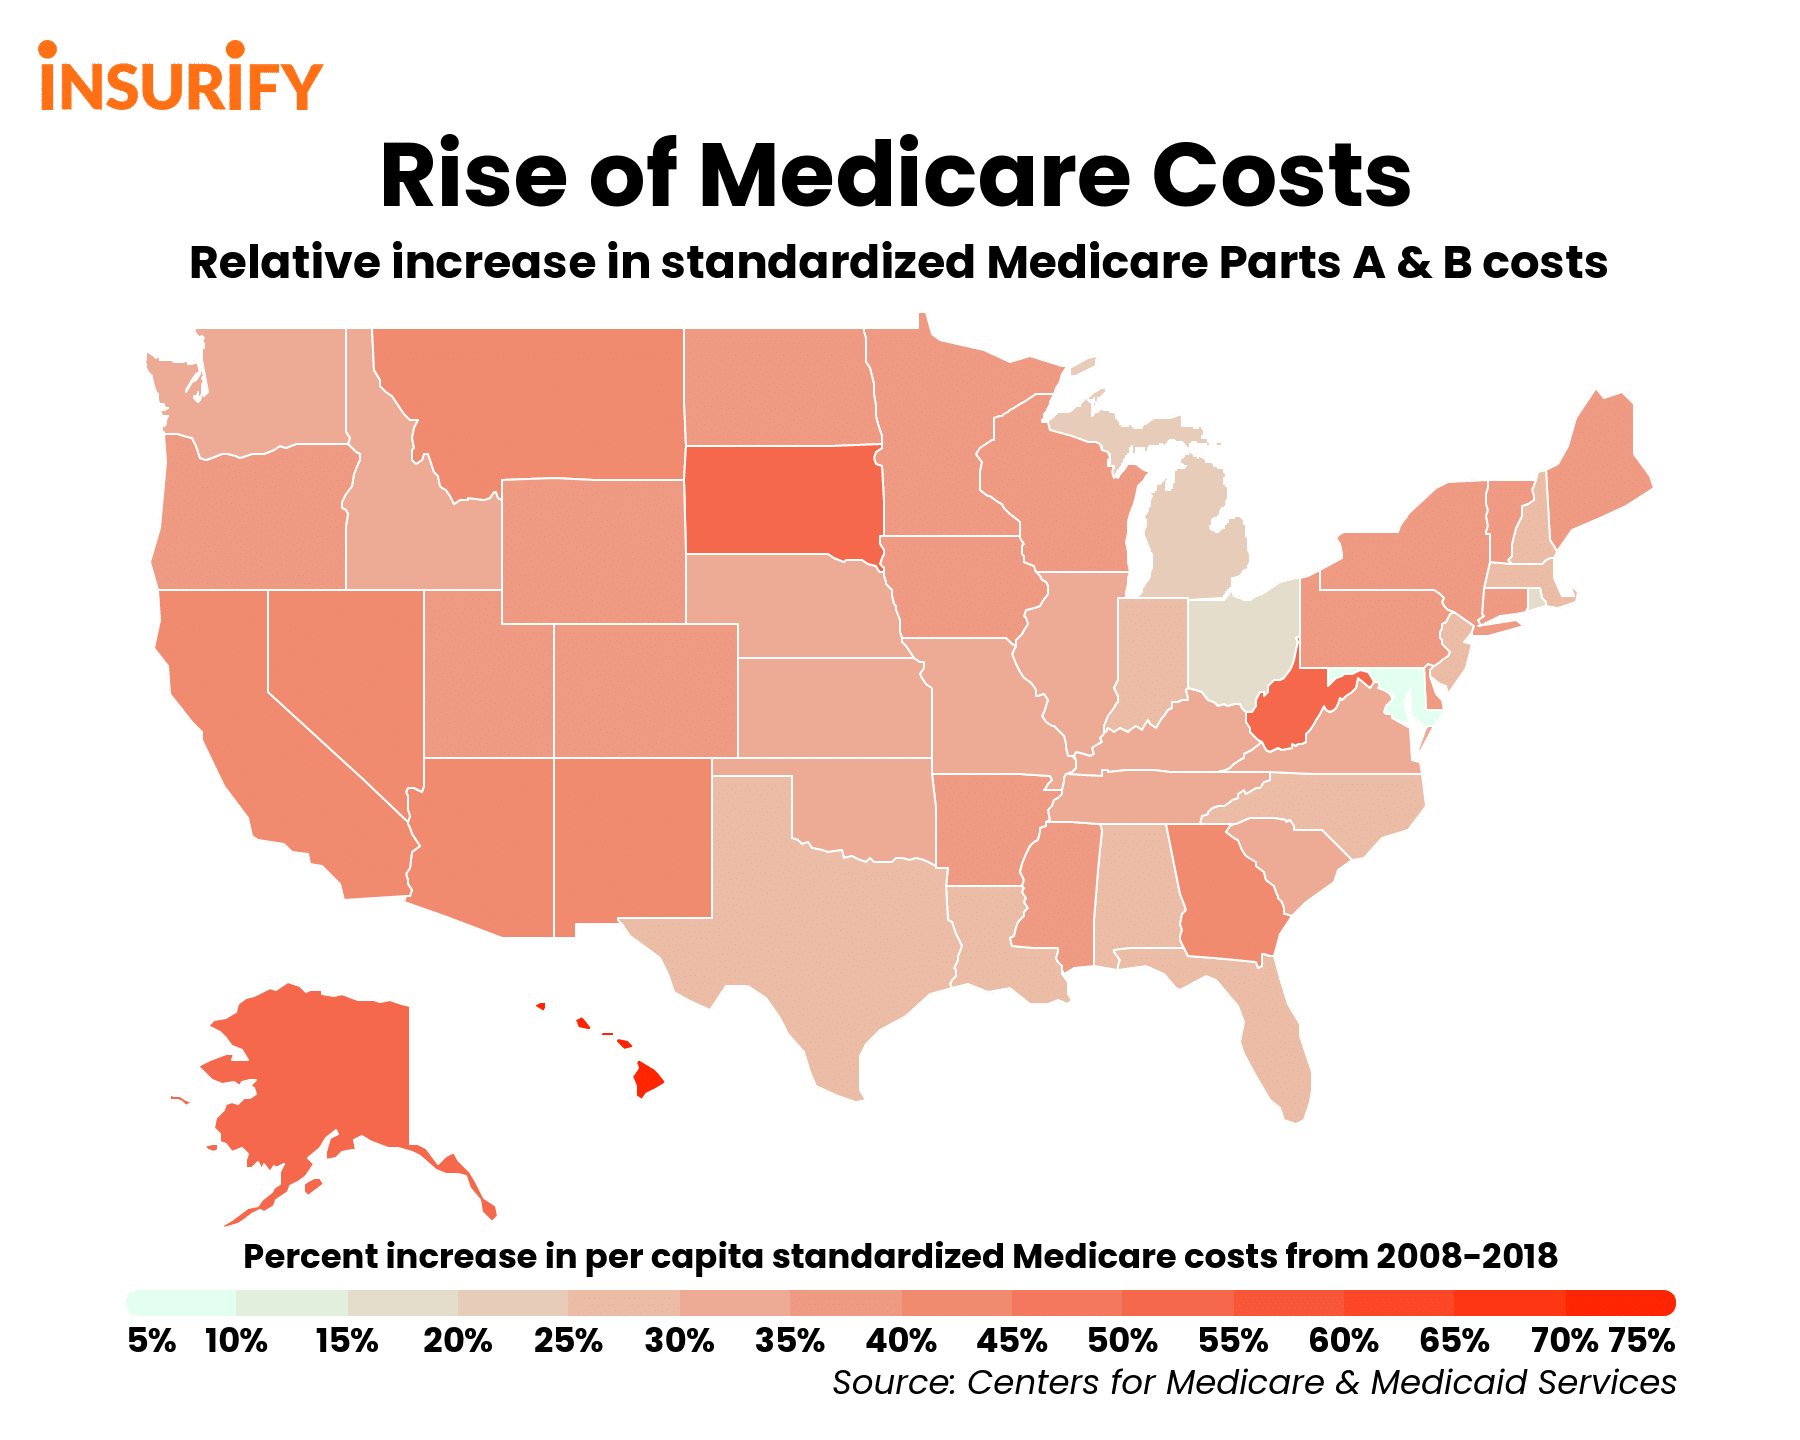 Heat map showing which states have experienced the greatest increases in Medicare spending over the past decade.